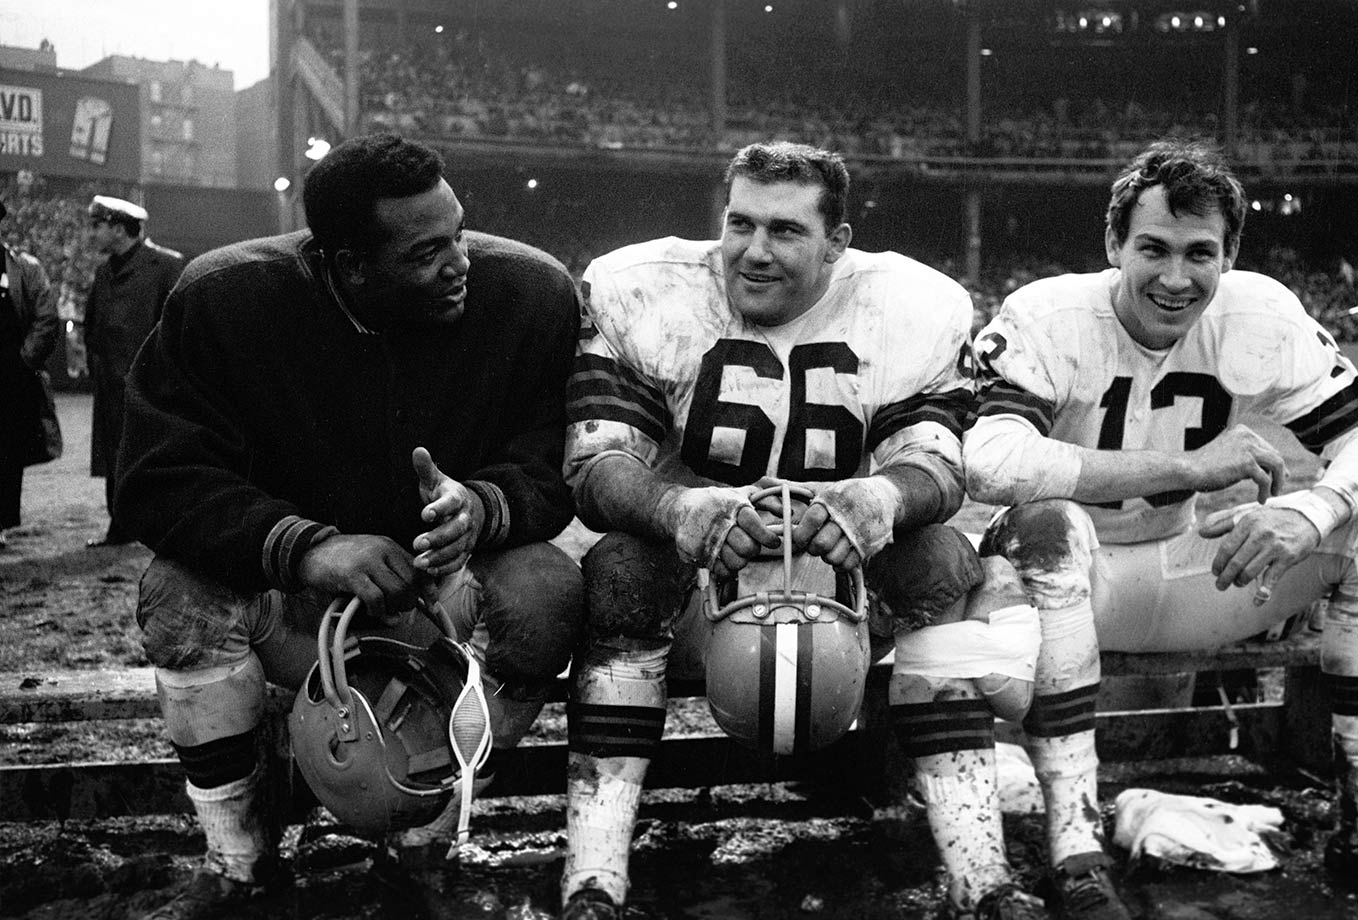 Jim Brown chats with teammates Gene Hickerson and Frank Ryan on the Cleveland Browns bench during a game in 1964 against the New York Giants at Yankee Stadium, the Giants' home stadium from 1956 to 1973.